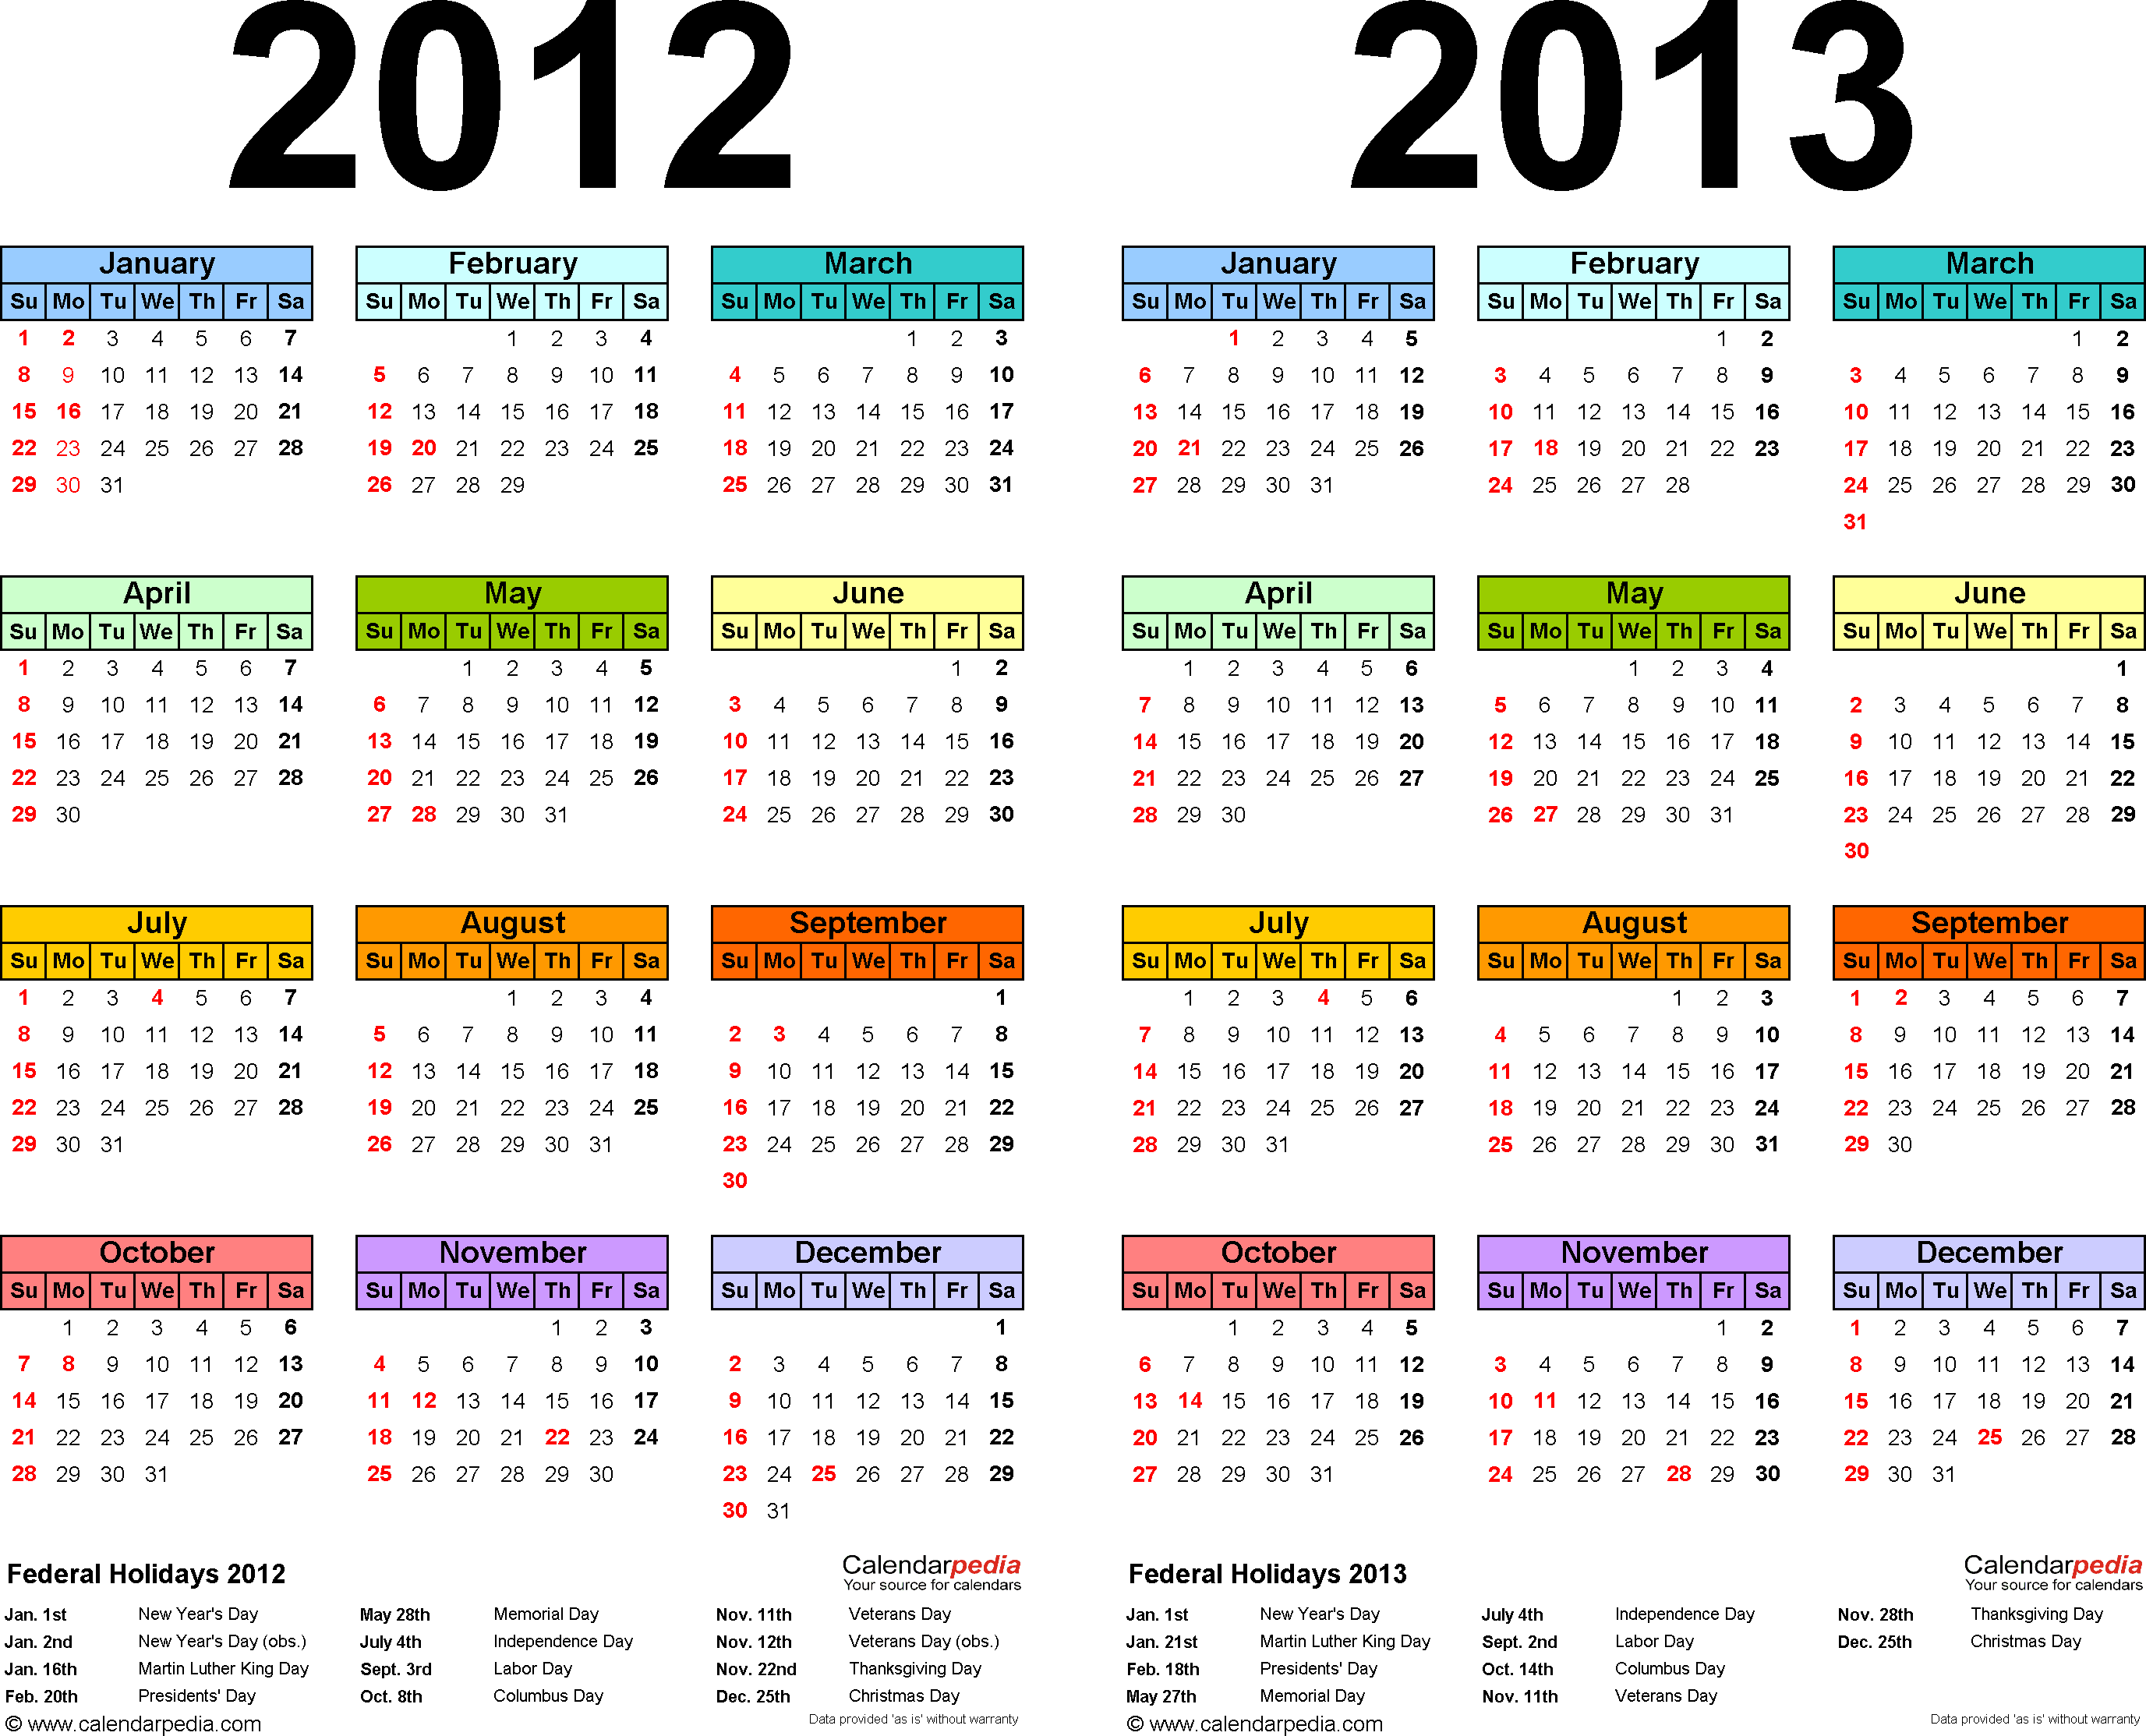 Template 1: PDF template for two year calendar 2012/2013 (landscape orientation, 1 page, multi-color)